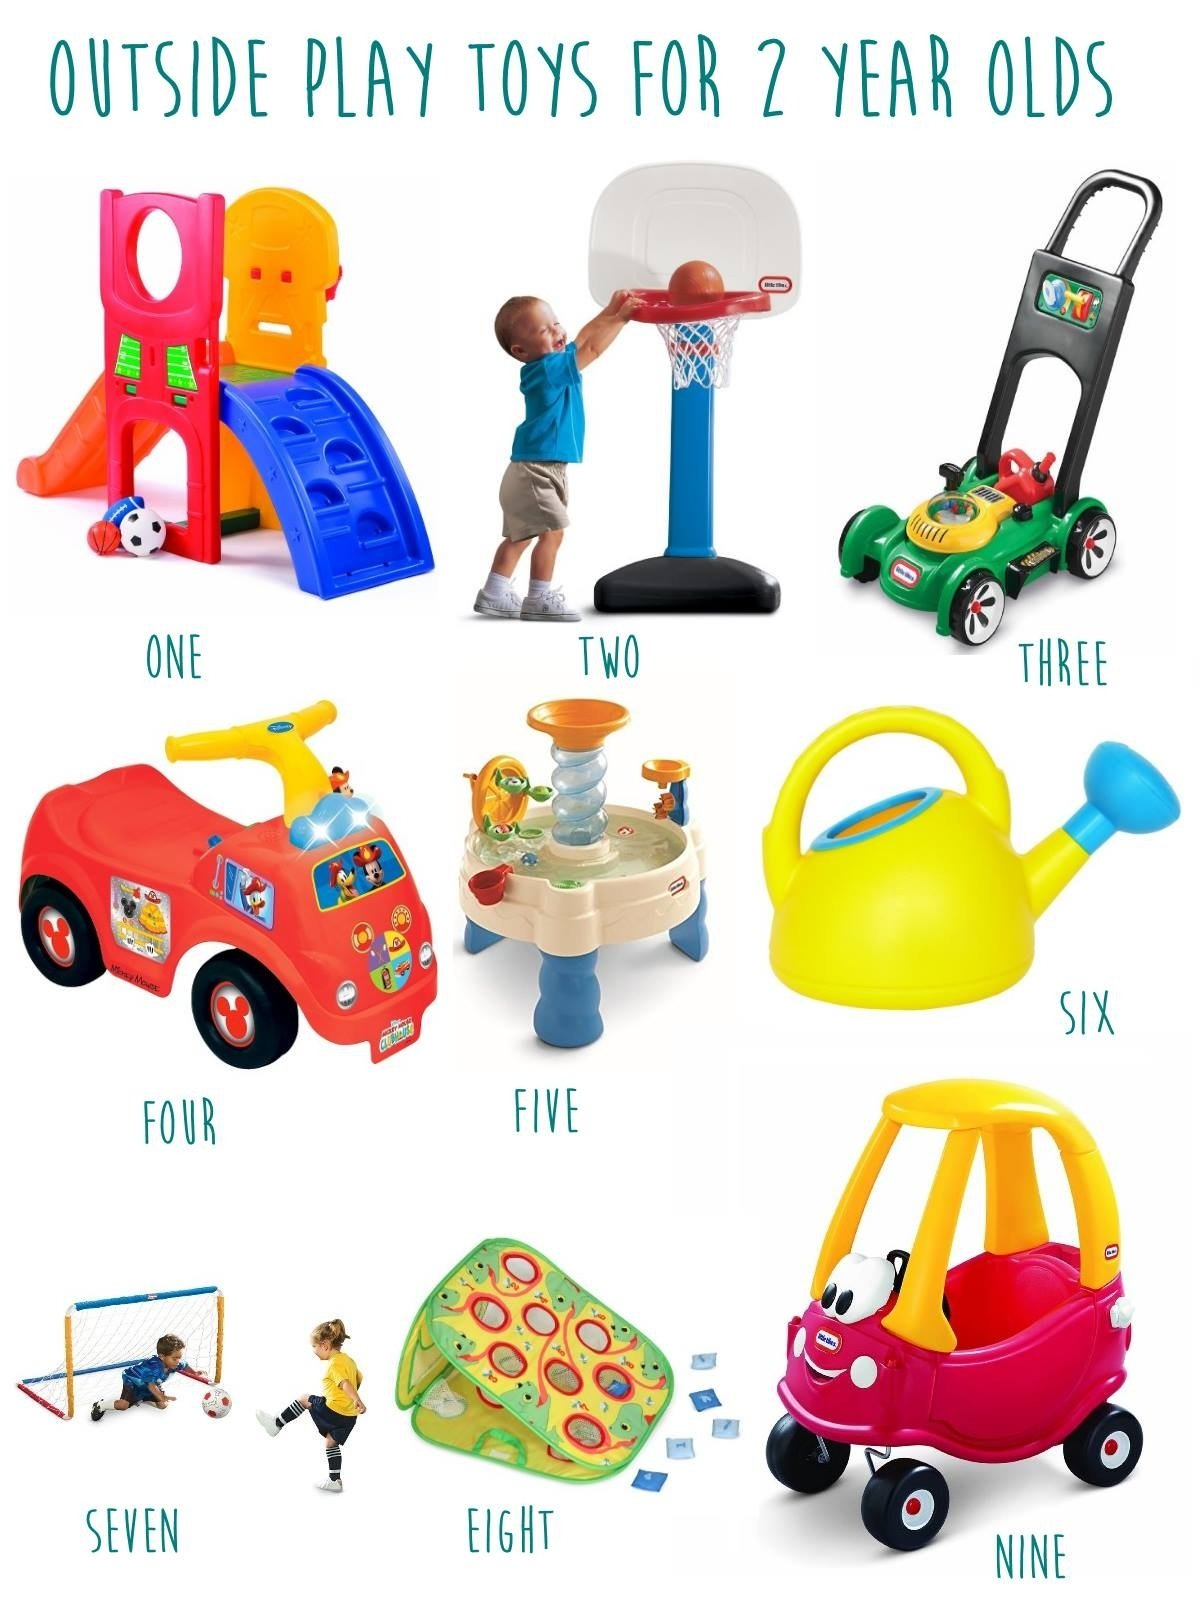 10 Nice Gift Ideas For 2 Year Olds top christmas toys for 2 year olds pictures children toys ideas 2